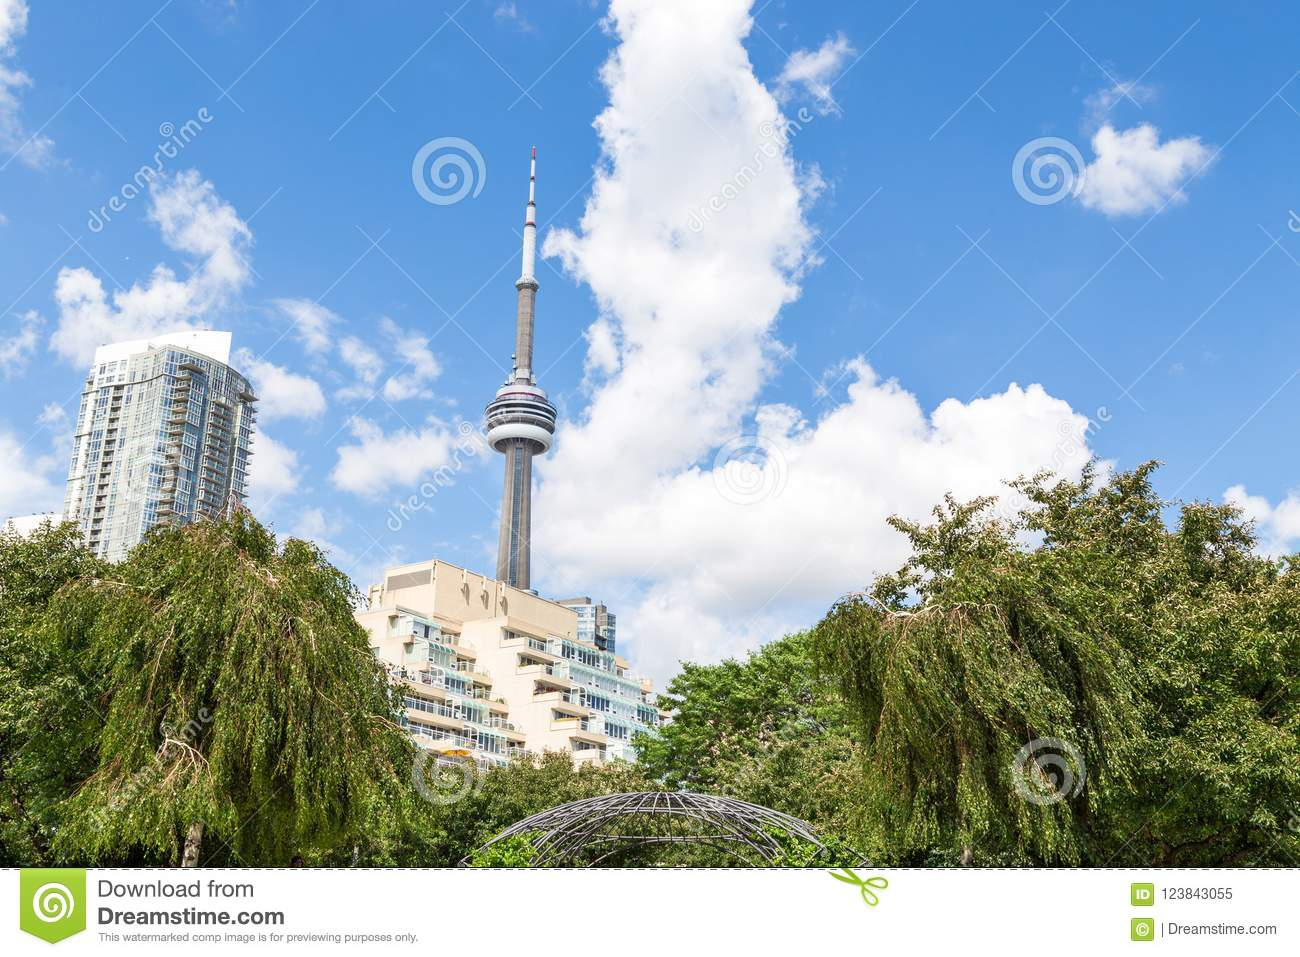 TORONTO, ON, CANADA - JUL 09, 2016: The top of the CN Tower and surrounding apartment buildings in downtown Toronto.